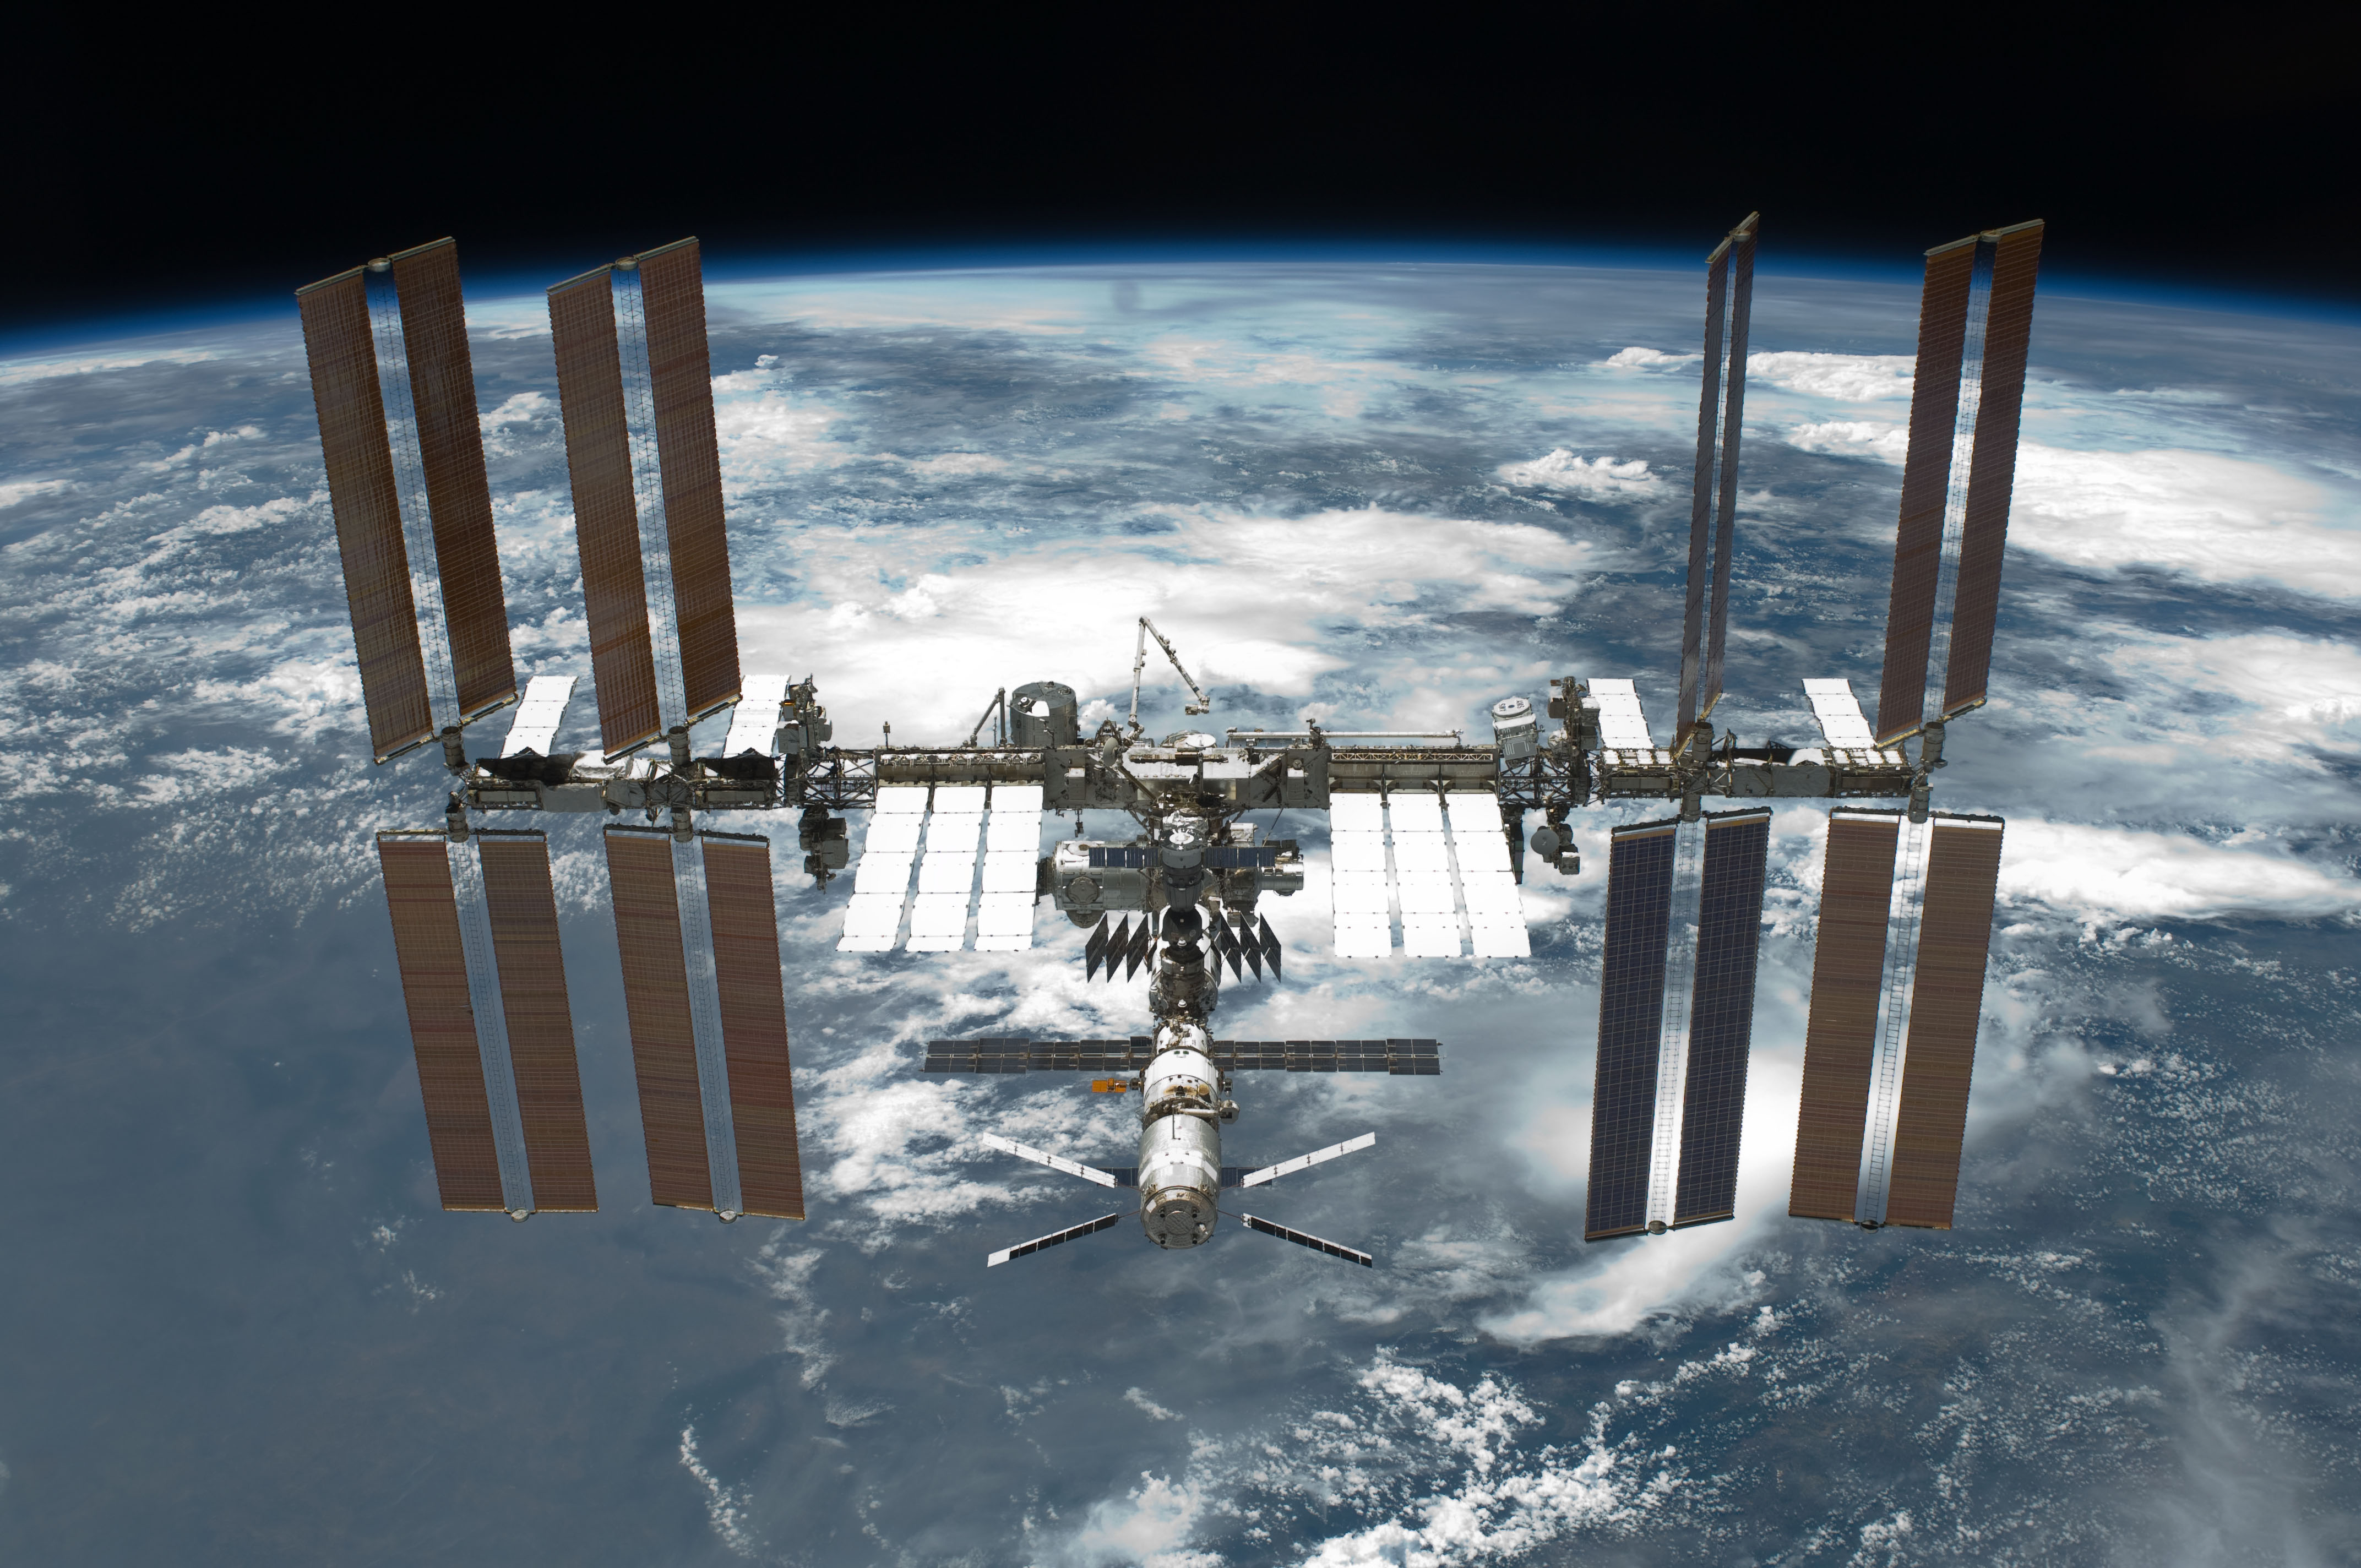 http://upload.wikimedia.org/wikipedia/commons/c/c9/STS-134_International_Space_Station_after_undocking.jpg?uselang=ru